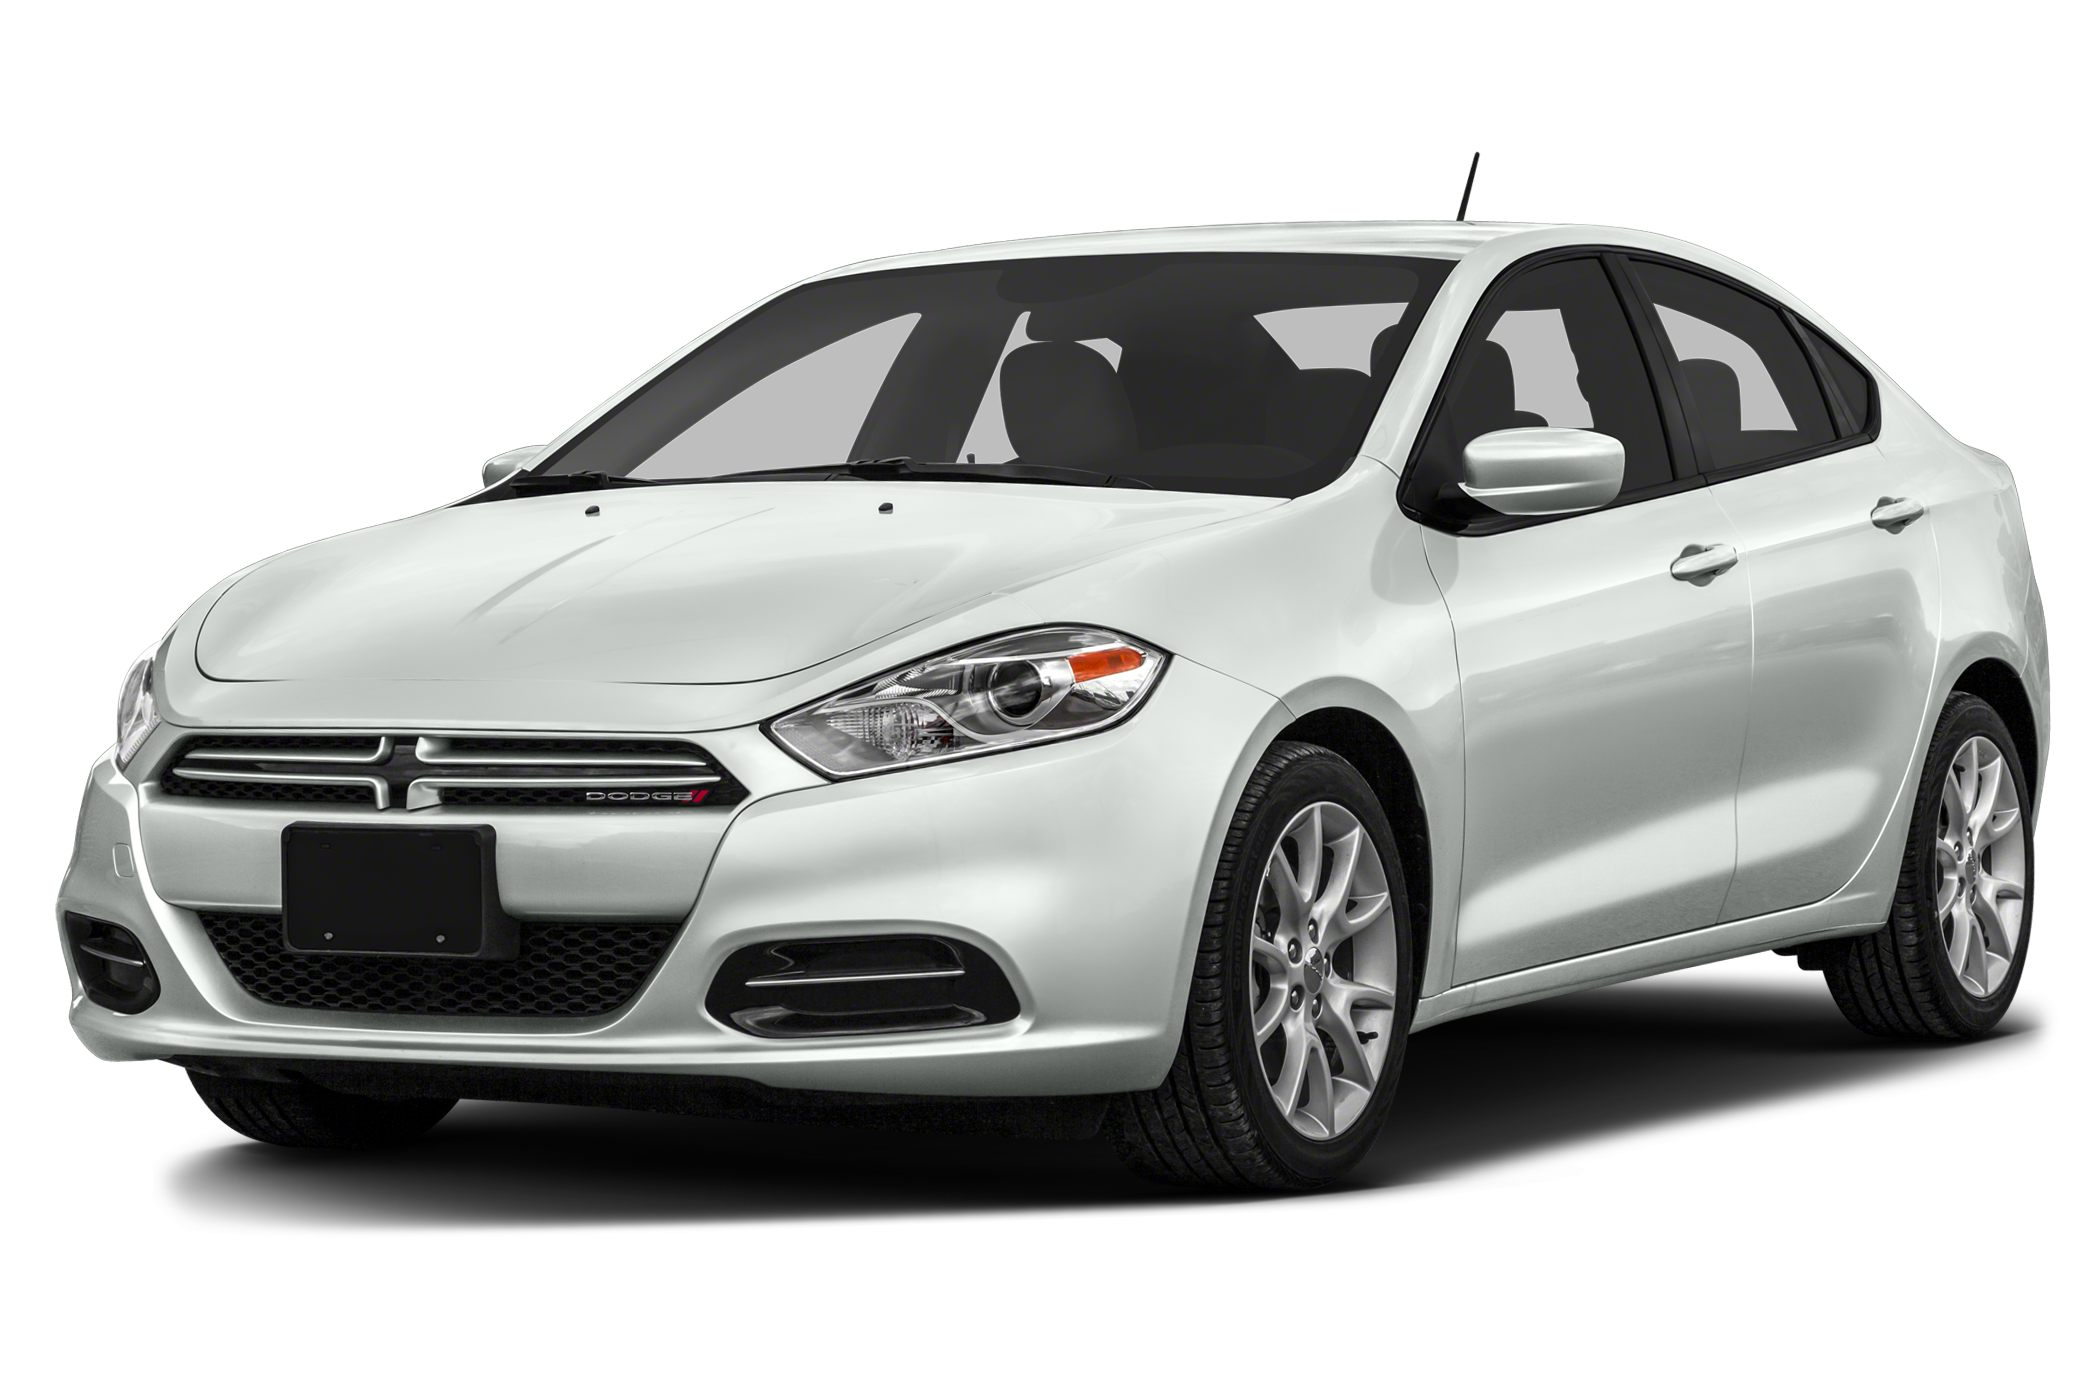 2013 Dodge Dart Limited/GT Sedan for sale in Wabash for $16,950 with 23,938 miles.